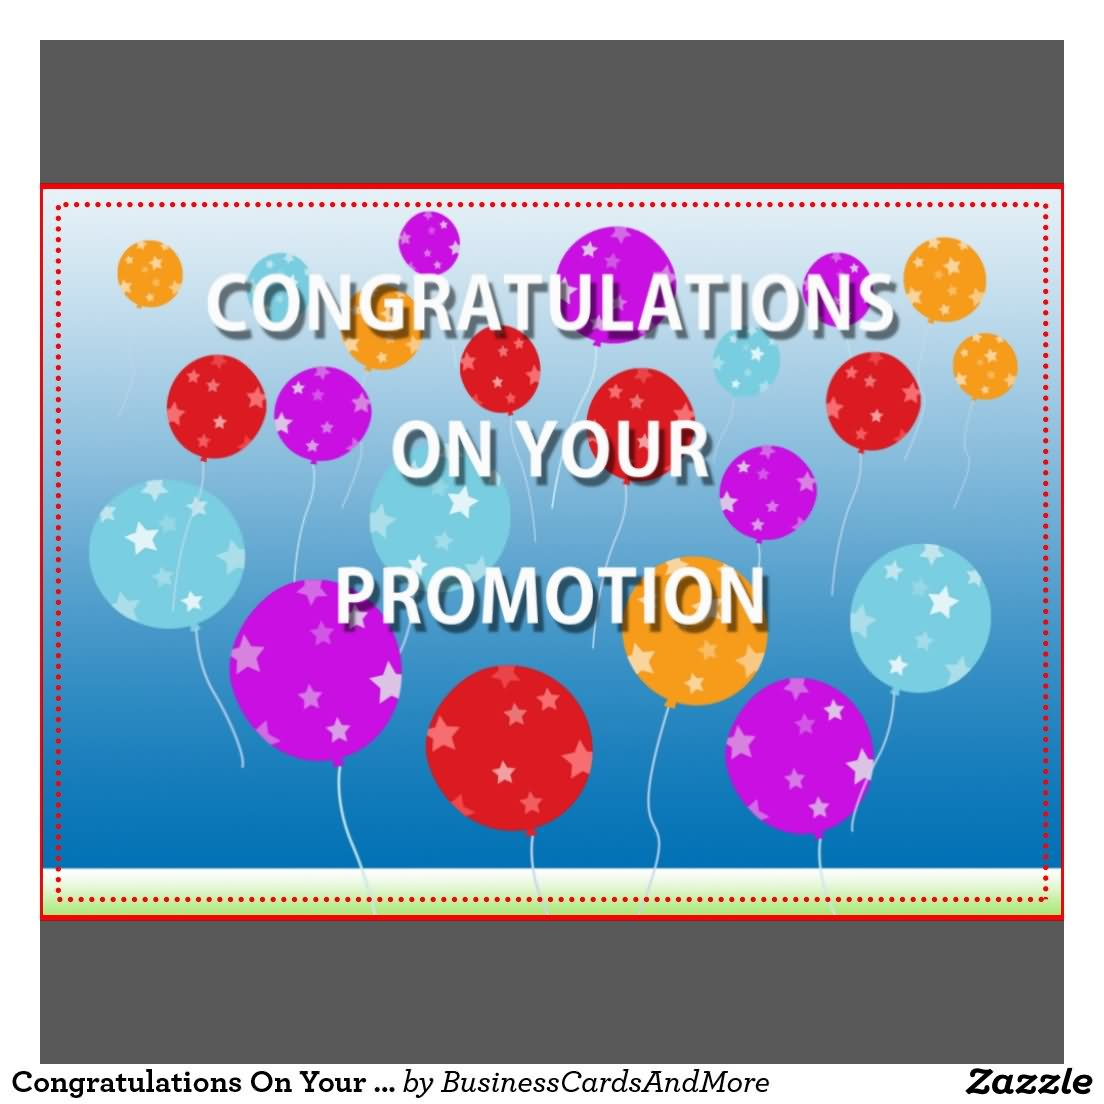 Congratulations On Your Promotion Ecard For Facebook Image